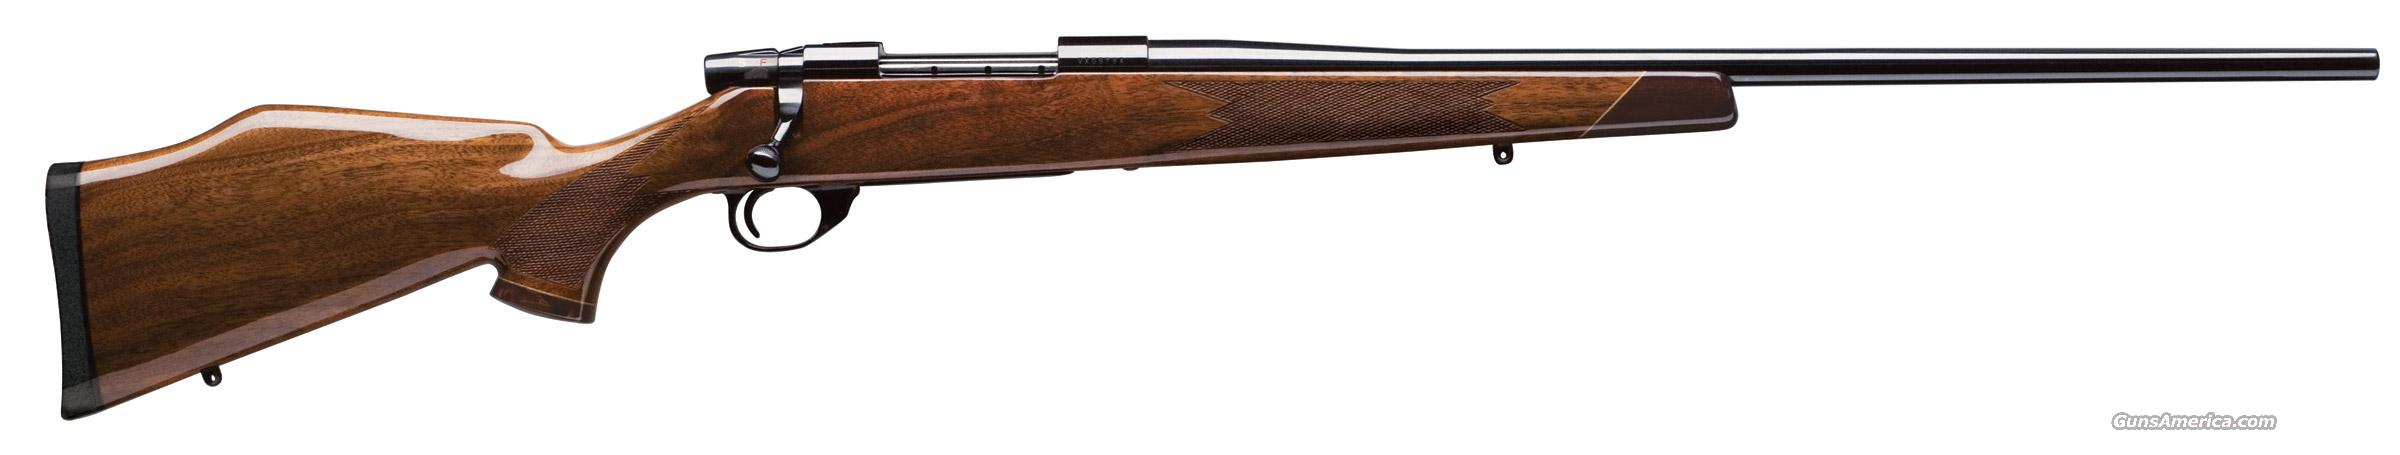 Weatherby Vanguard DELUXE 7mm Rem. Mag   New!  Guns > Rifles > Weatherby Rifles > Sporting